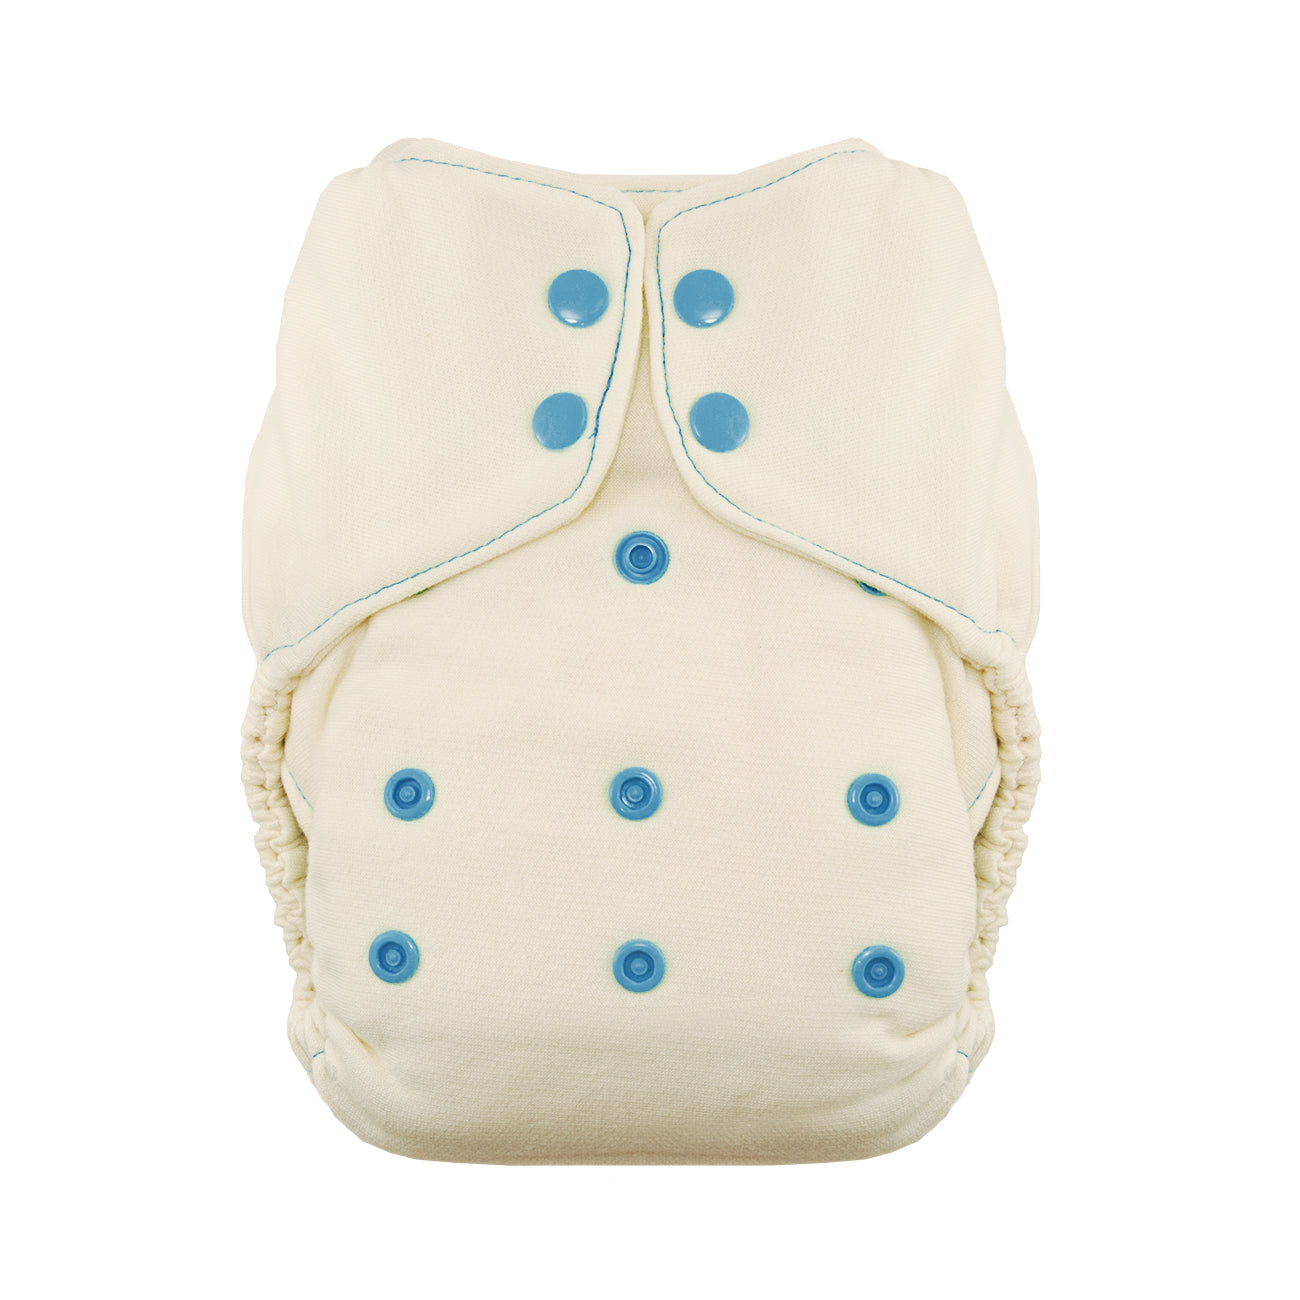 Thirsties Natural Fitted One Size Diaper - Yellow Birch